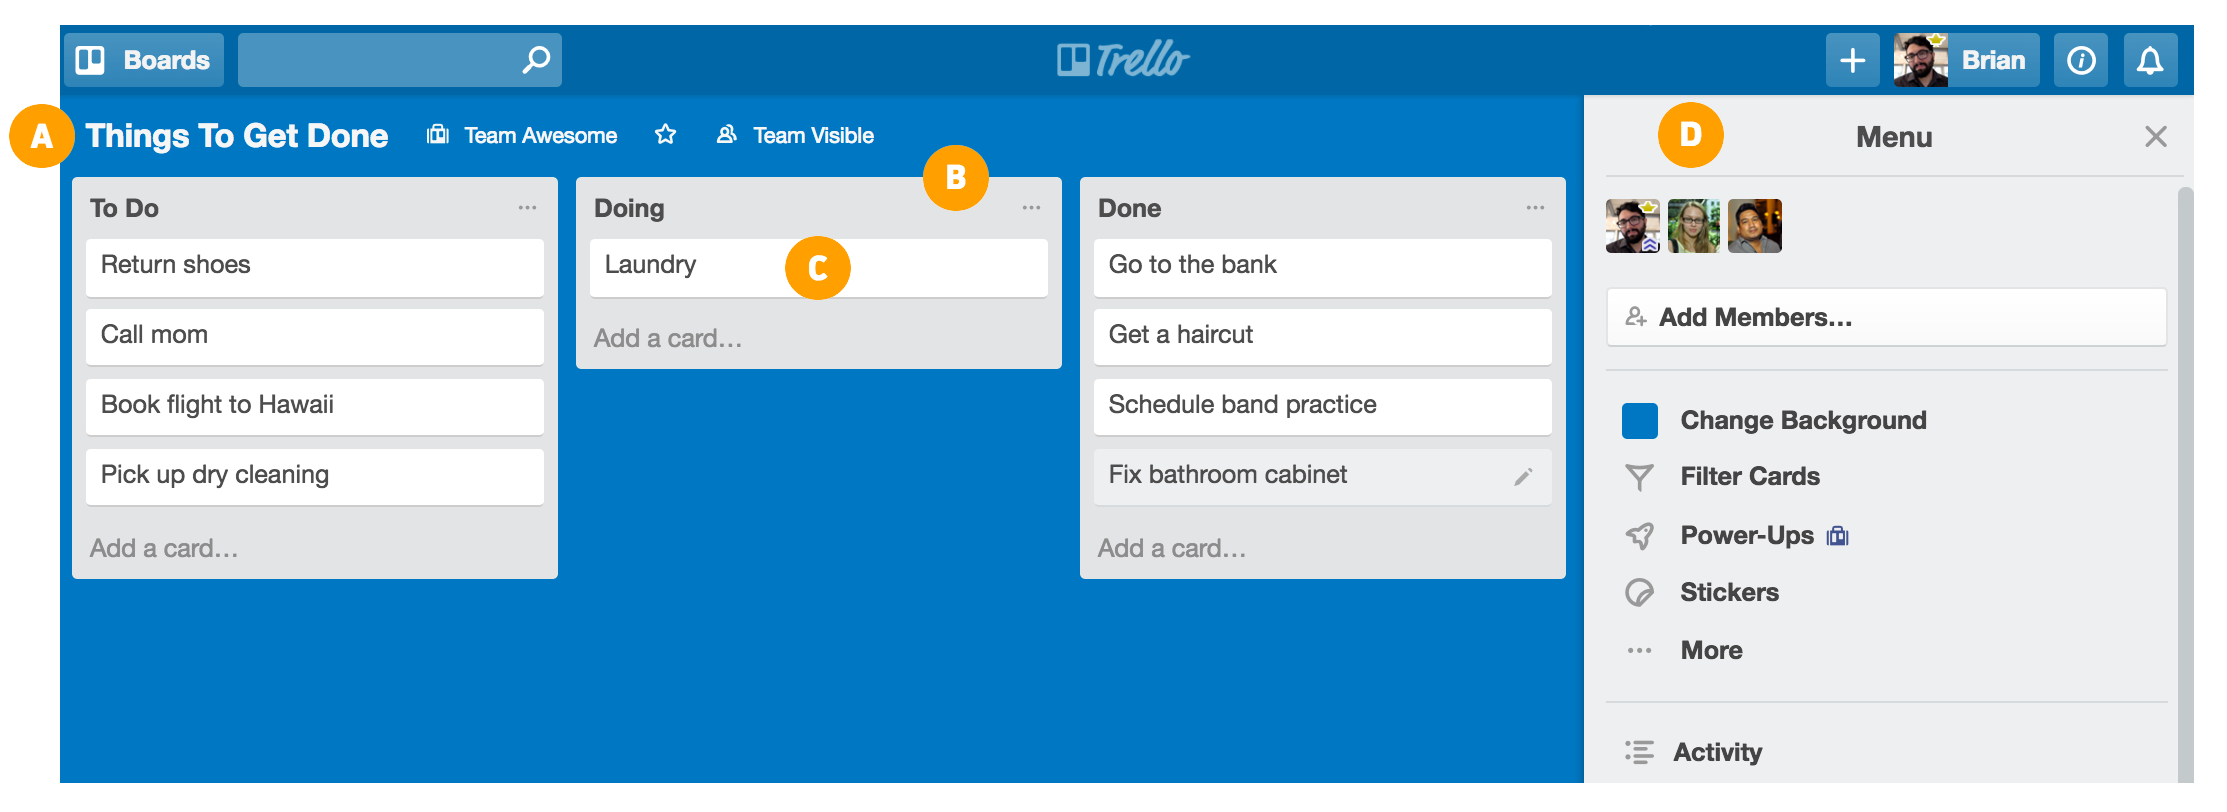 Basics of a Trello board